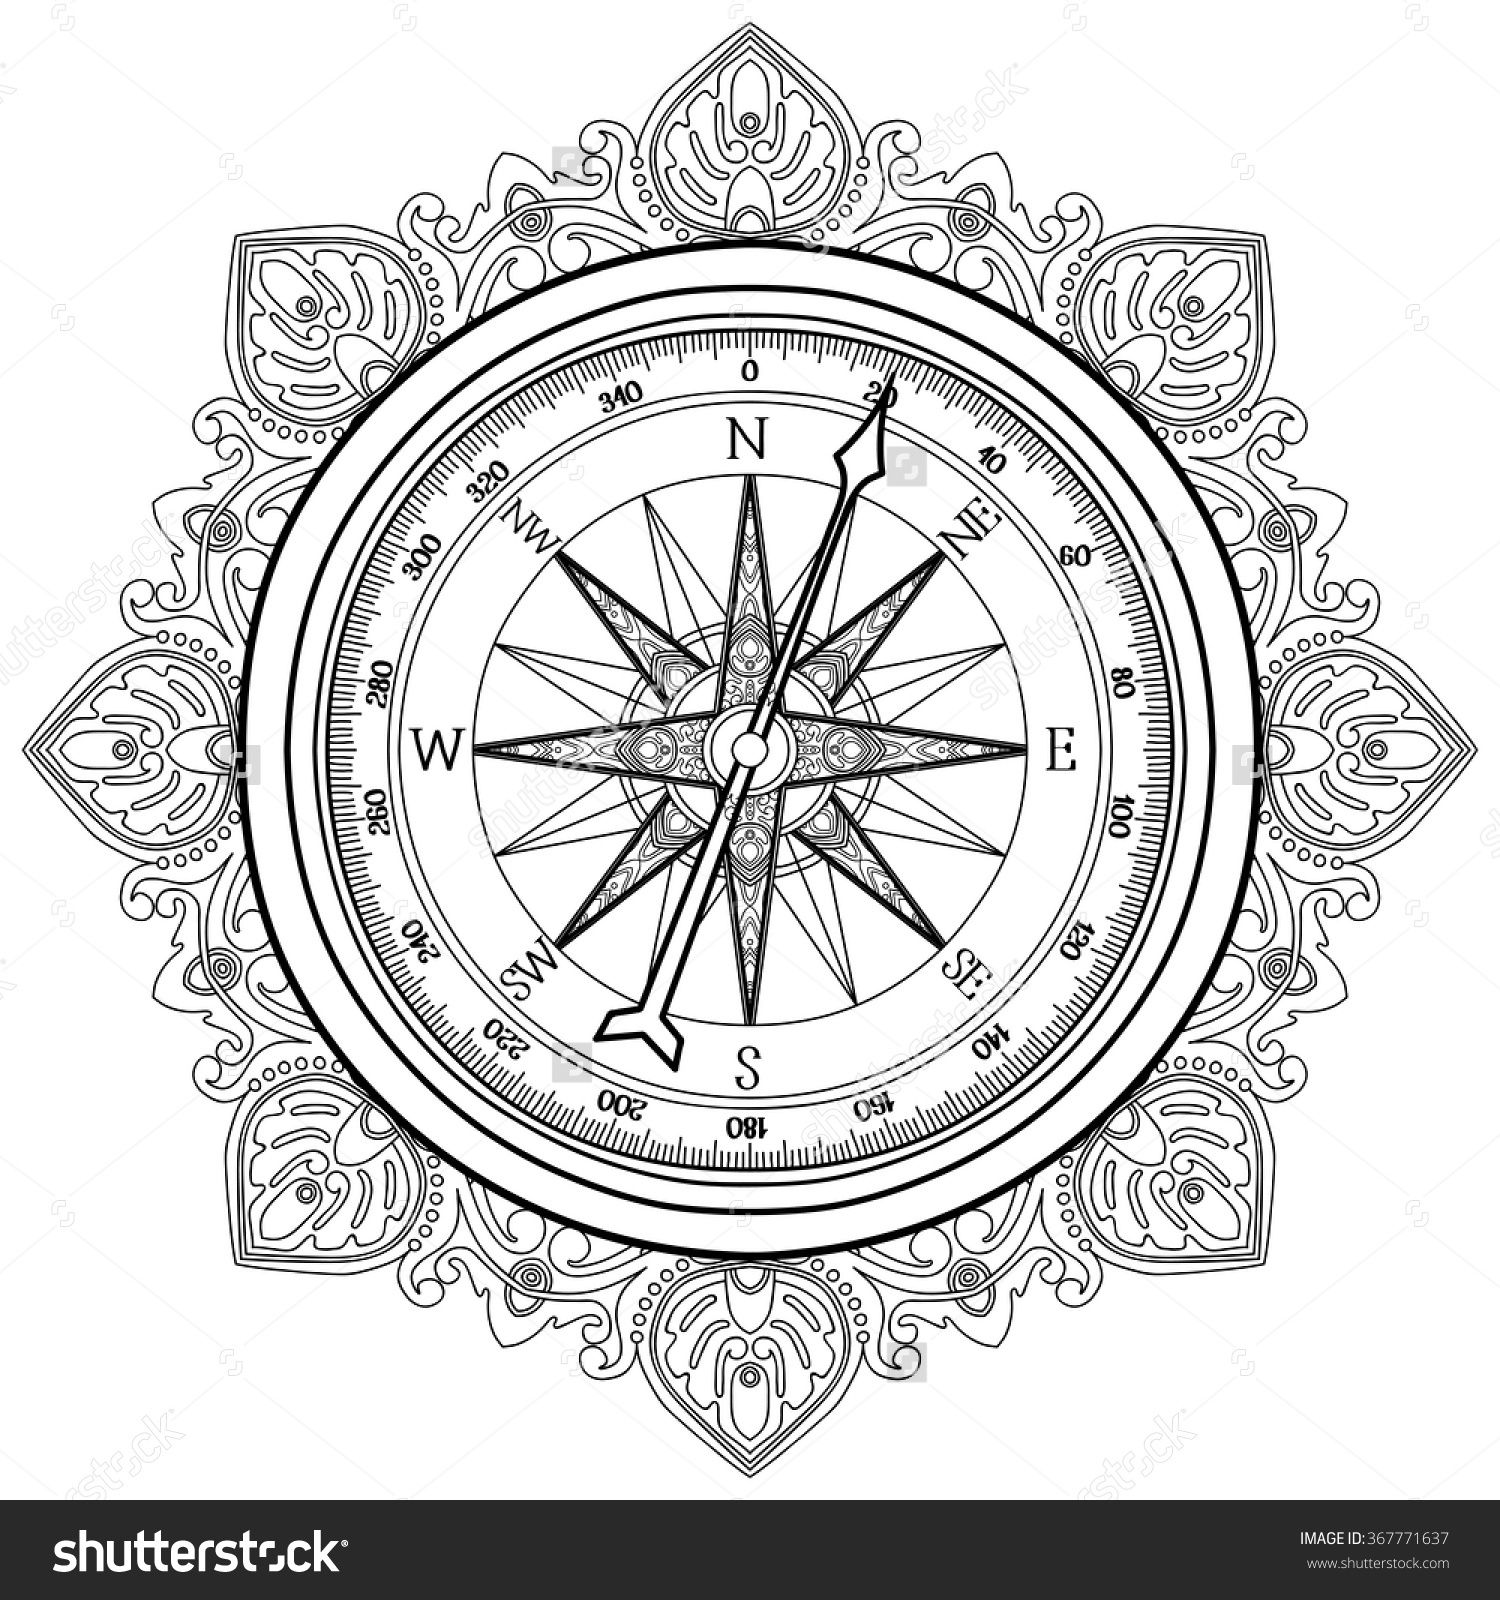 Image result for adult coloring compass